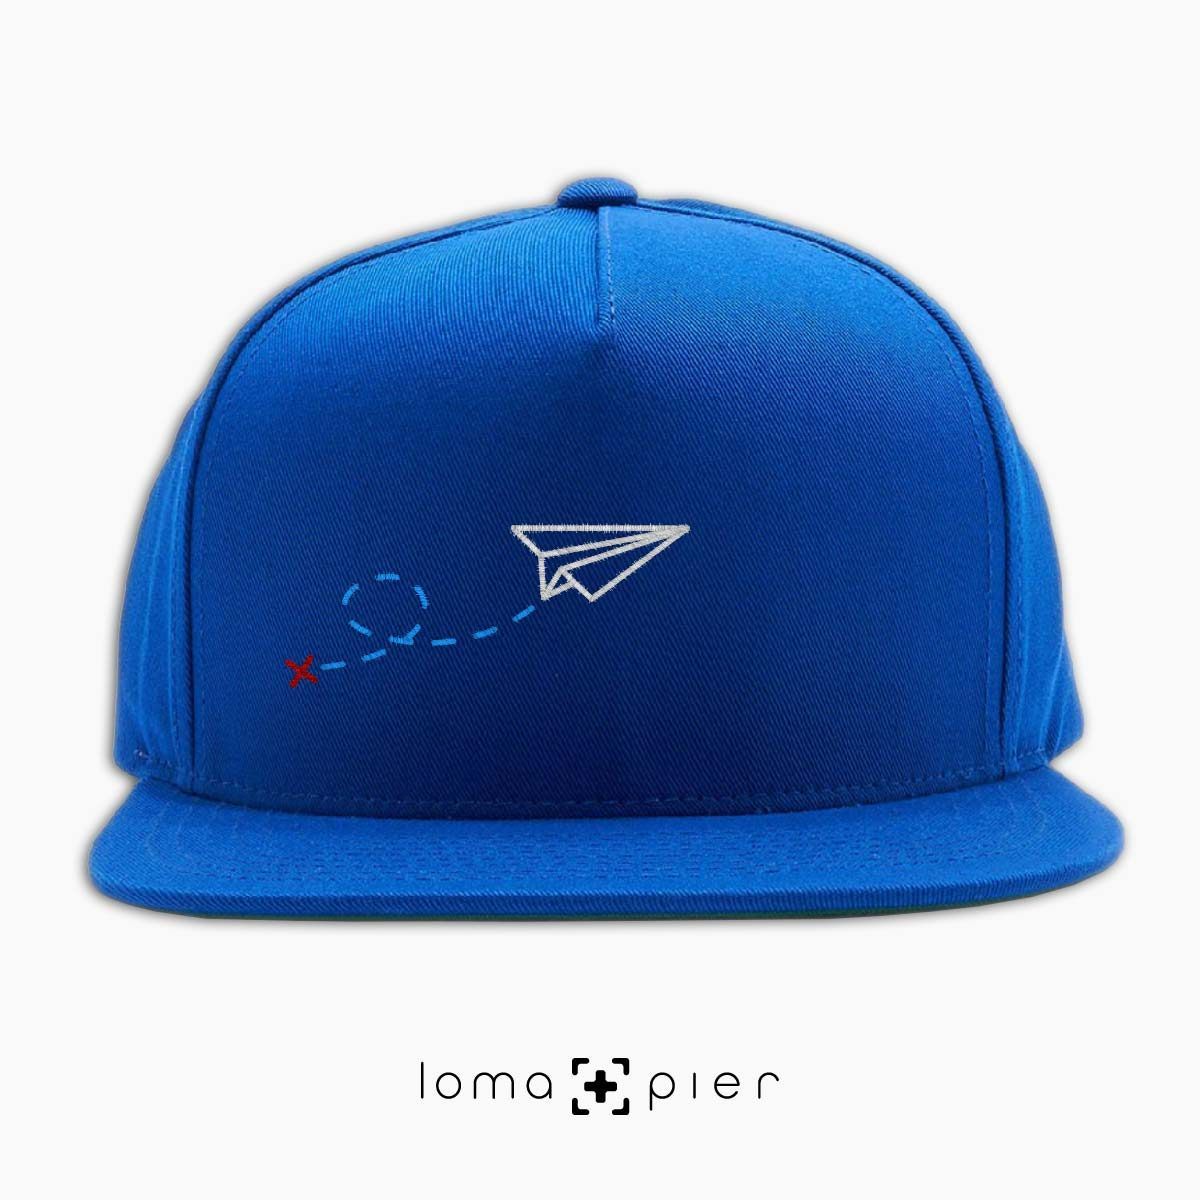 PAPER AIRPLANE icon embroidered on a blue classic snapback hat by loma+pier hat store